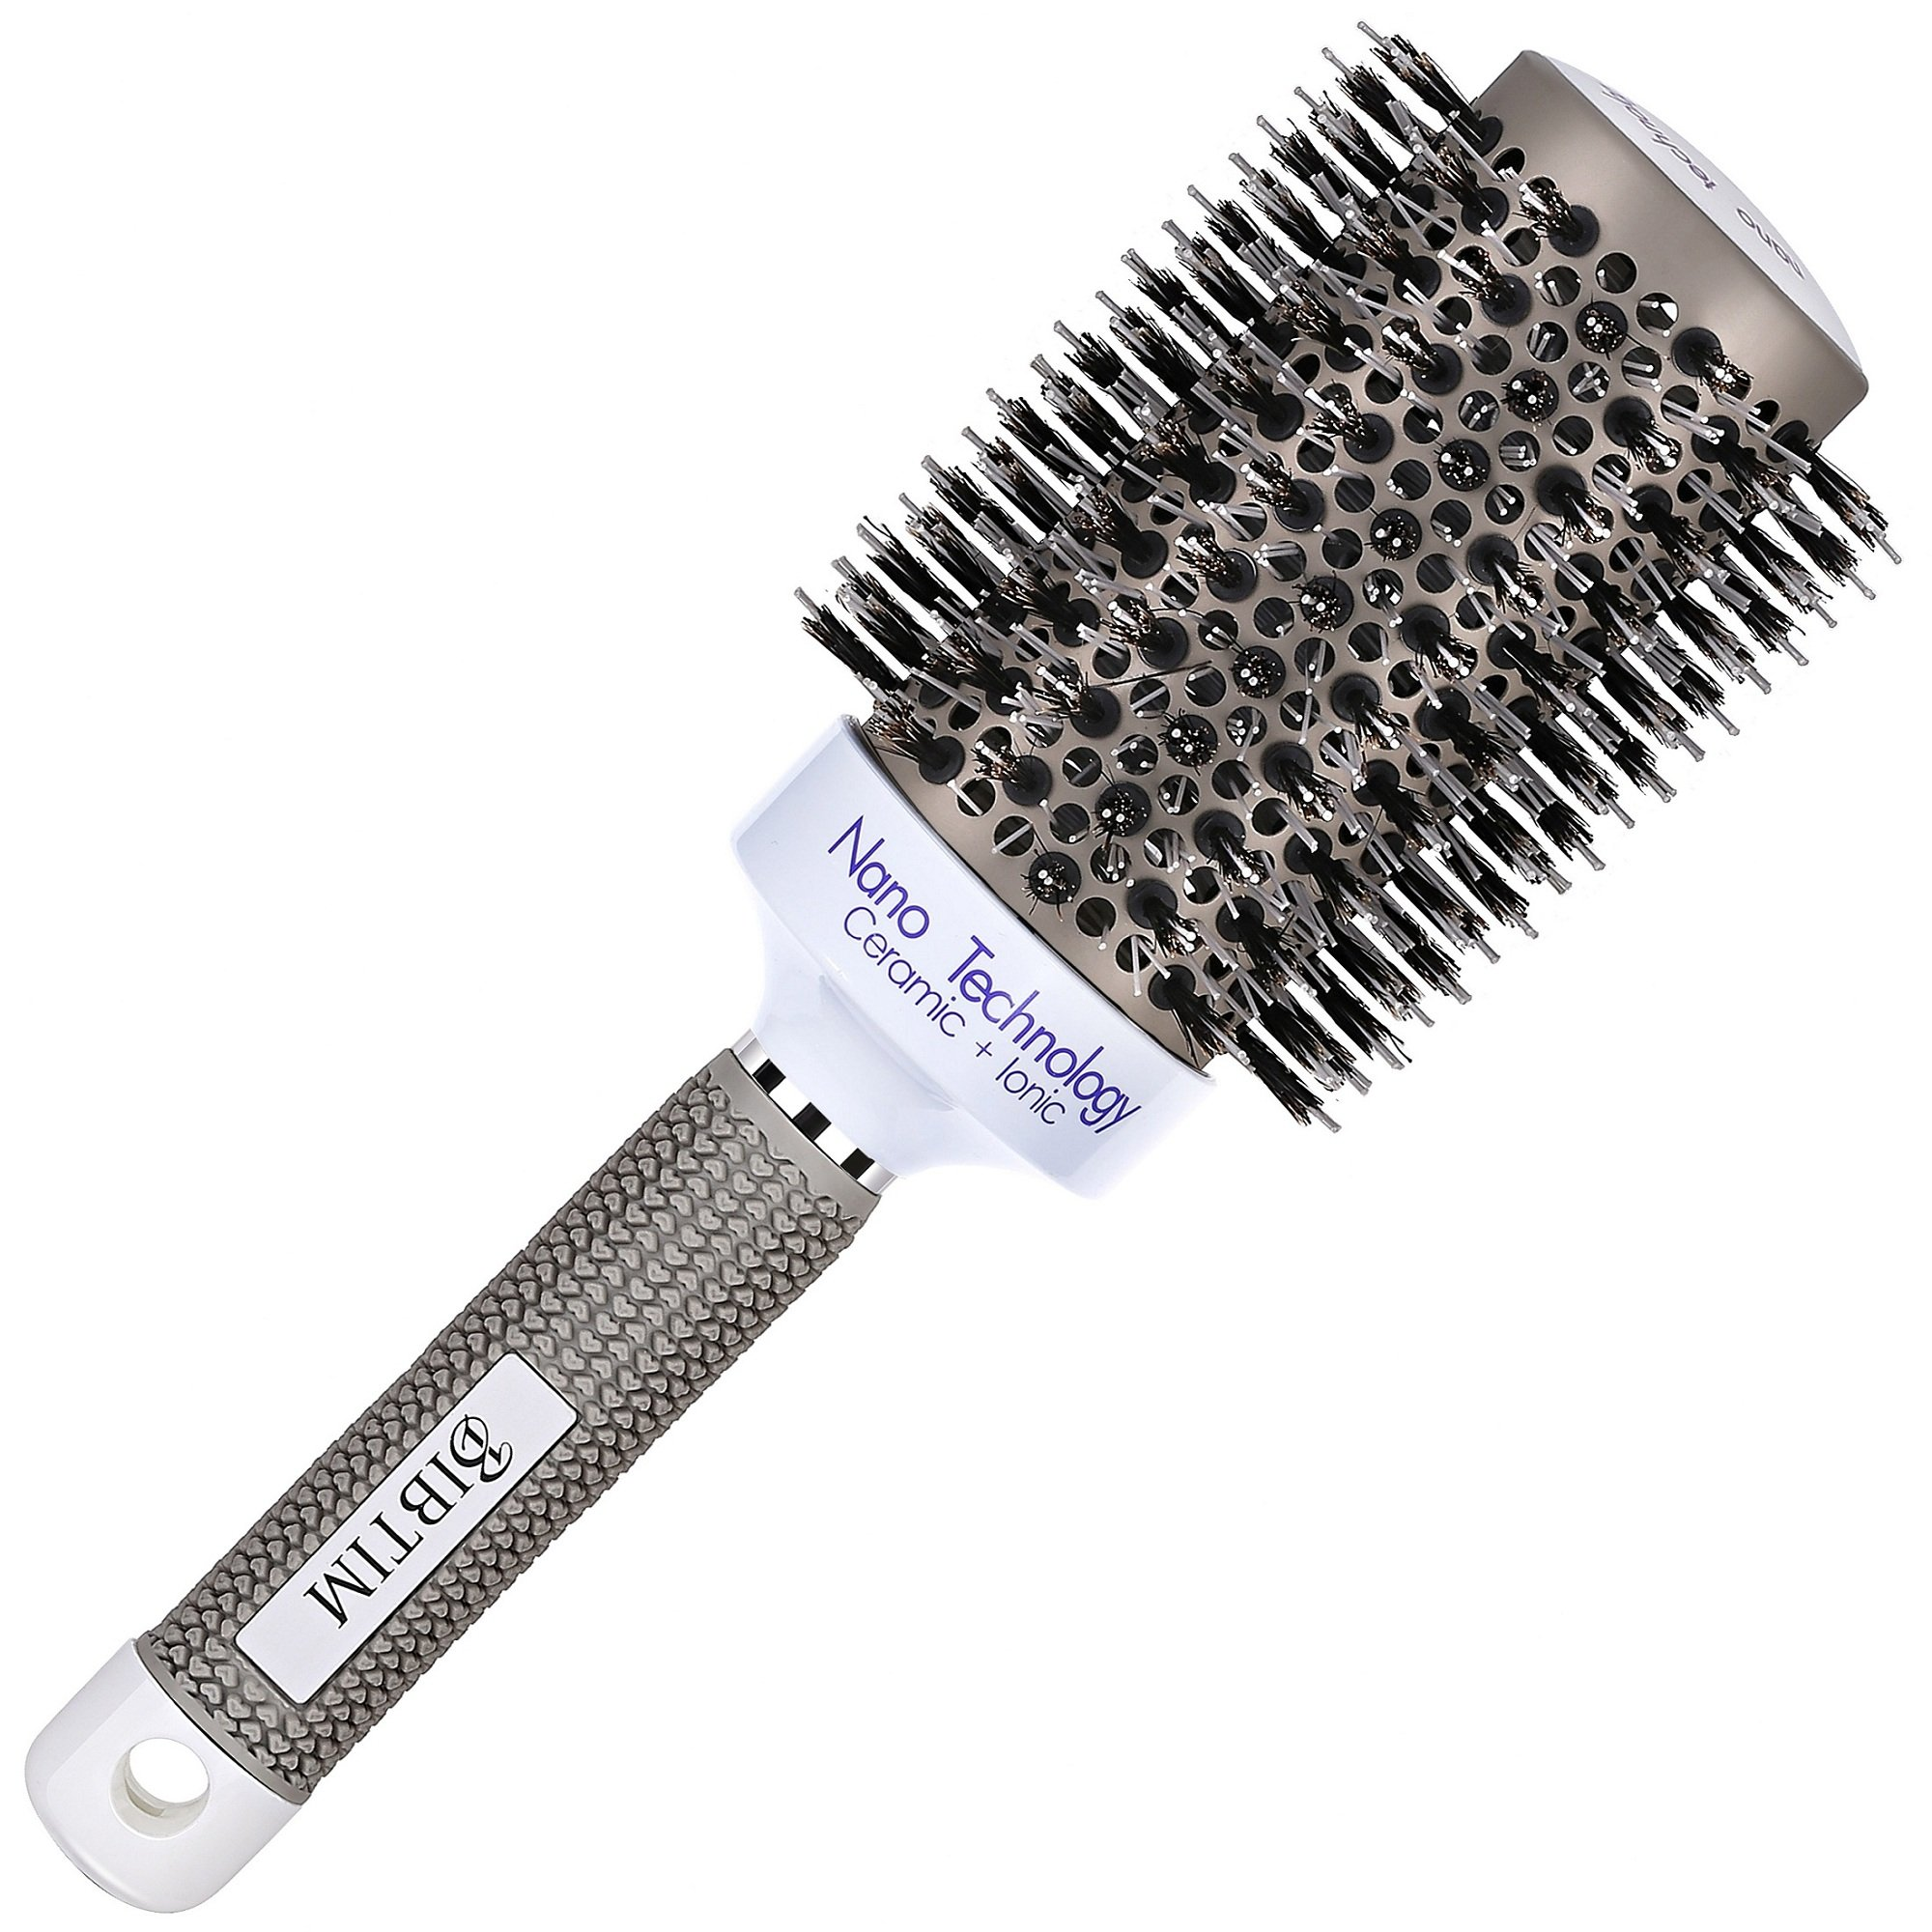 BIBTIM Nano Technology Ceramic & lonic Round Barrel Hair Brush with Natural Boar Bristle for Blow Drying, Curling, Styling, Straightening (2 inch) by BIBTIM